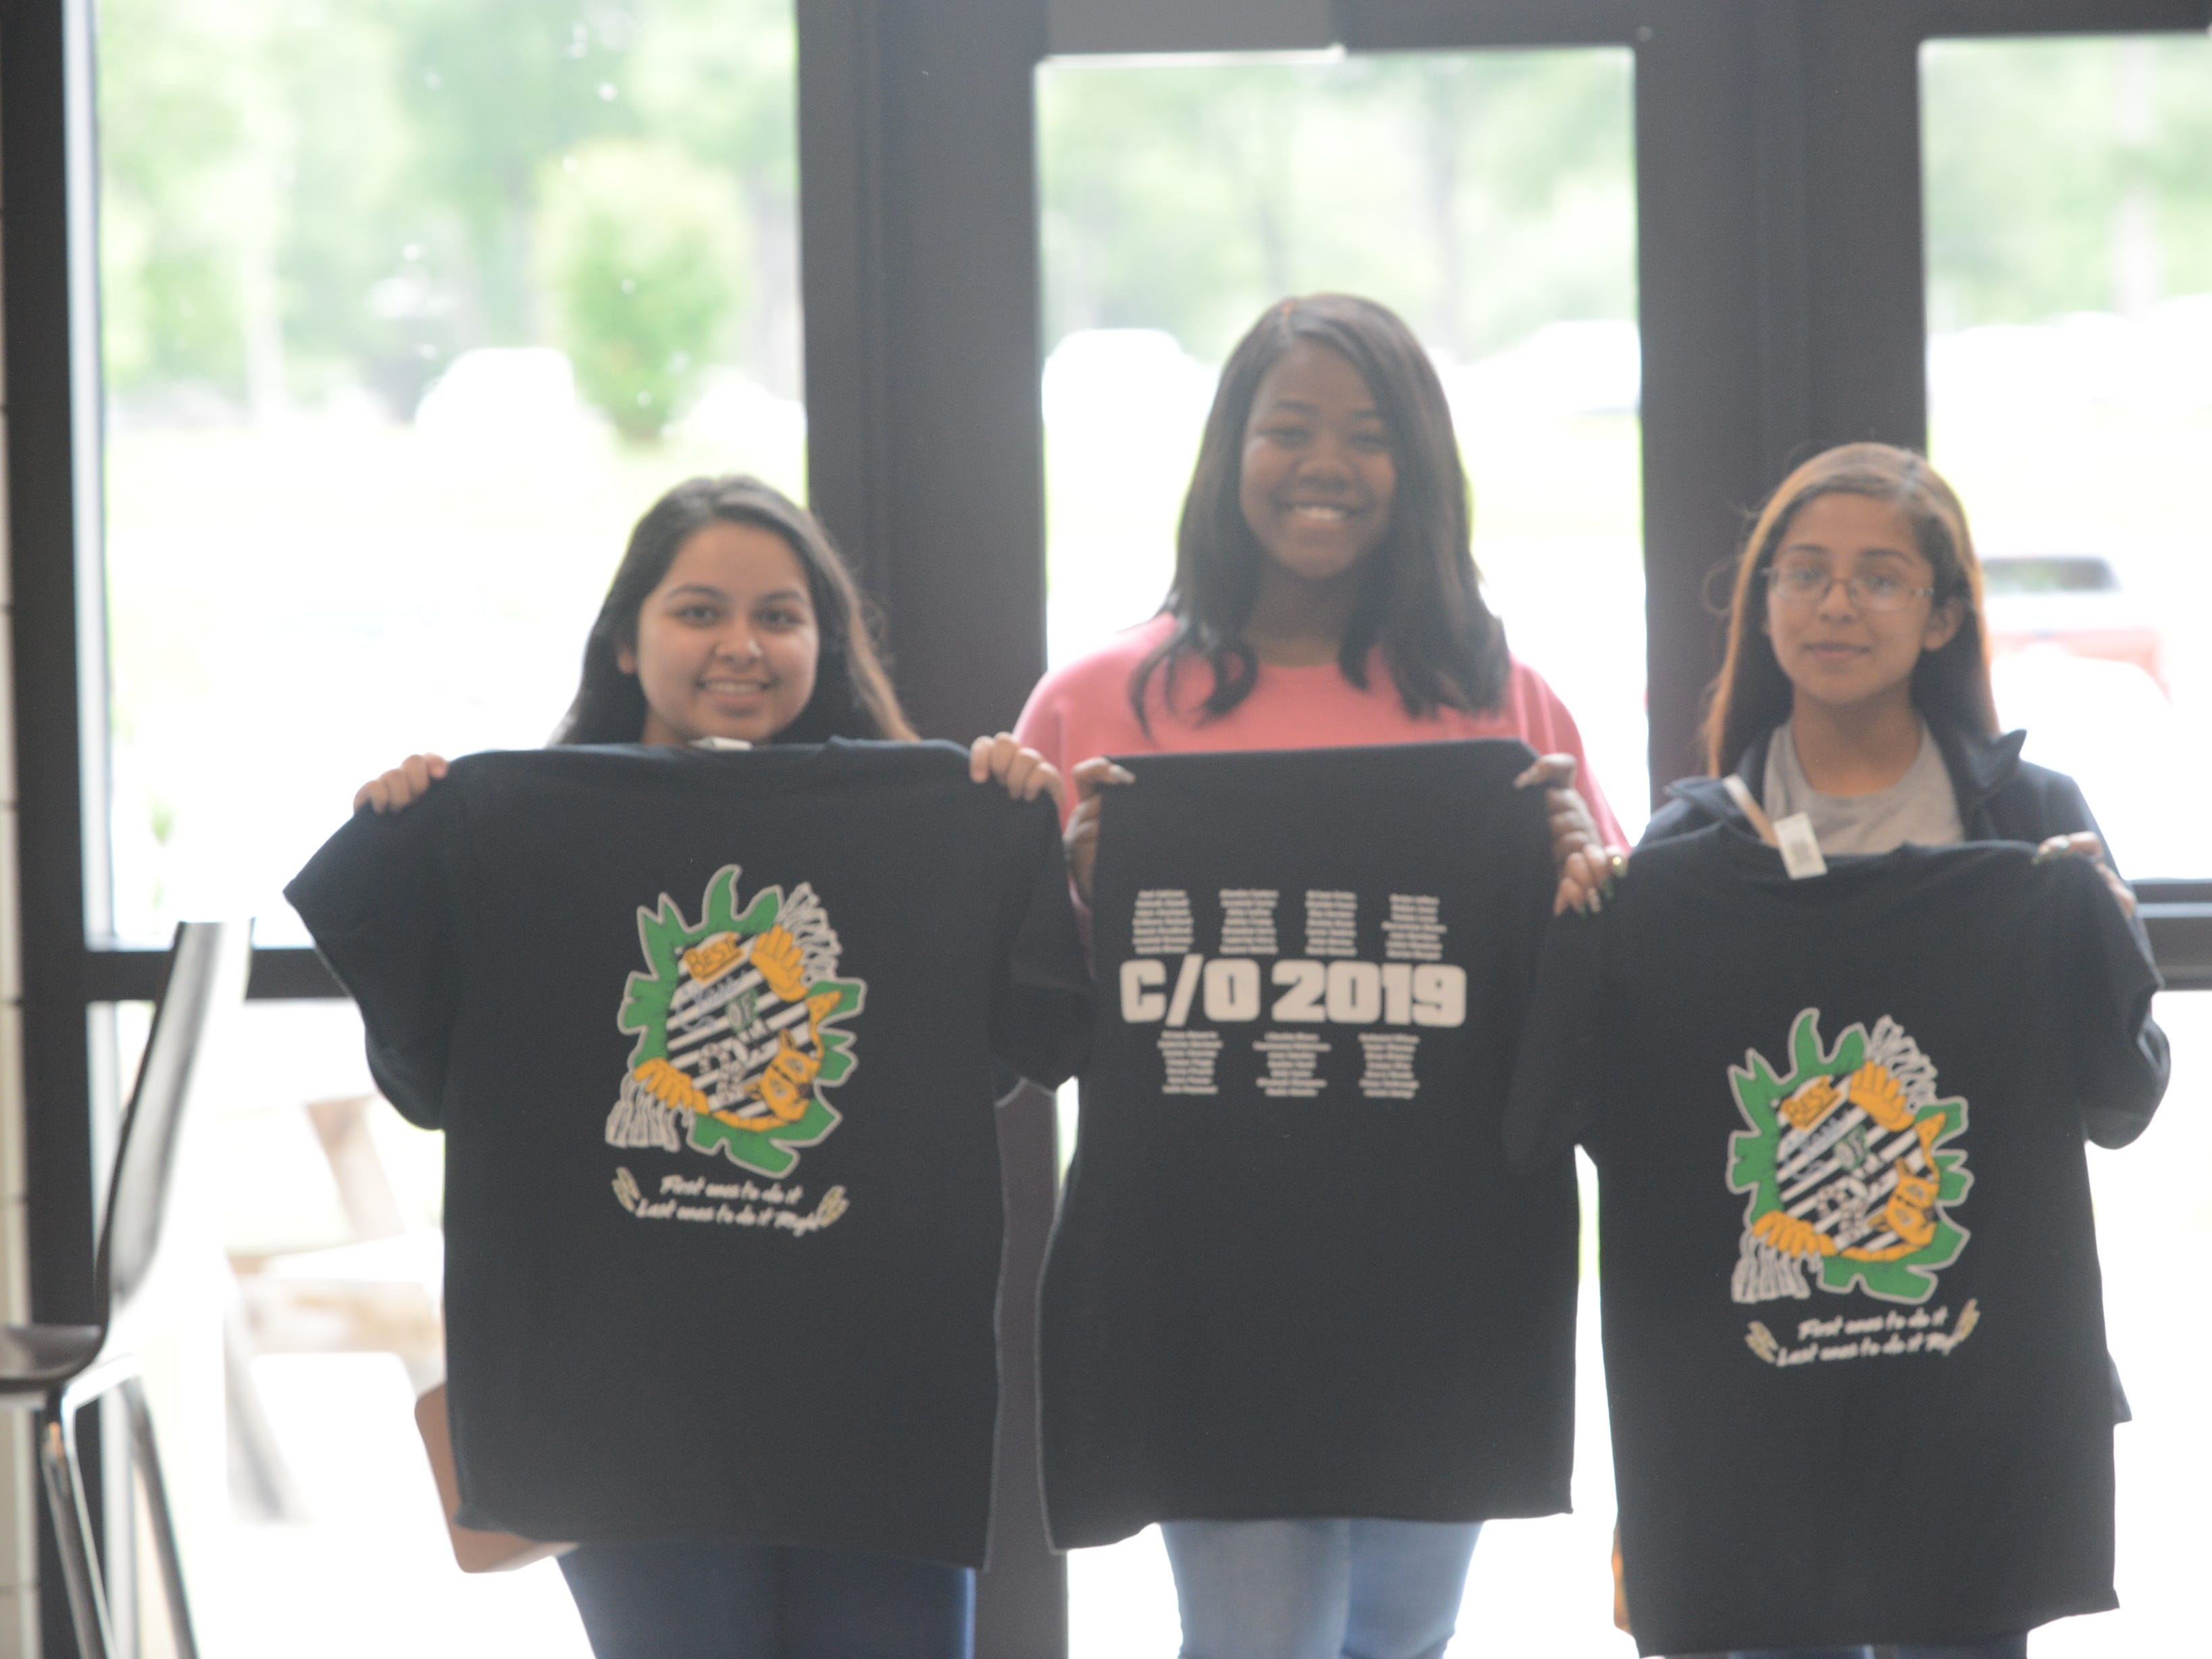 Students pose proudly with their senior shirts at the senior picnic.